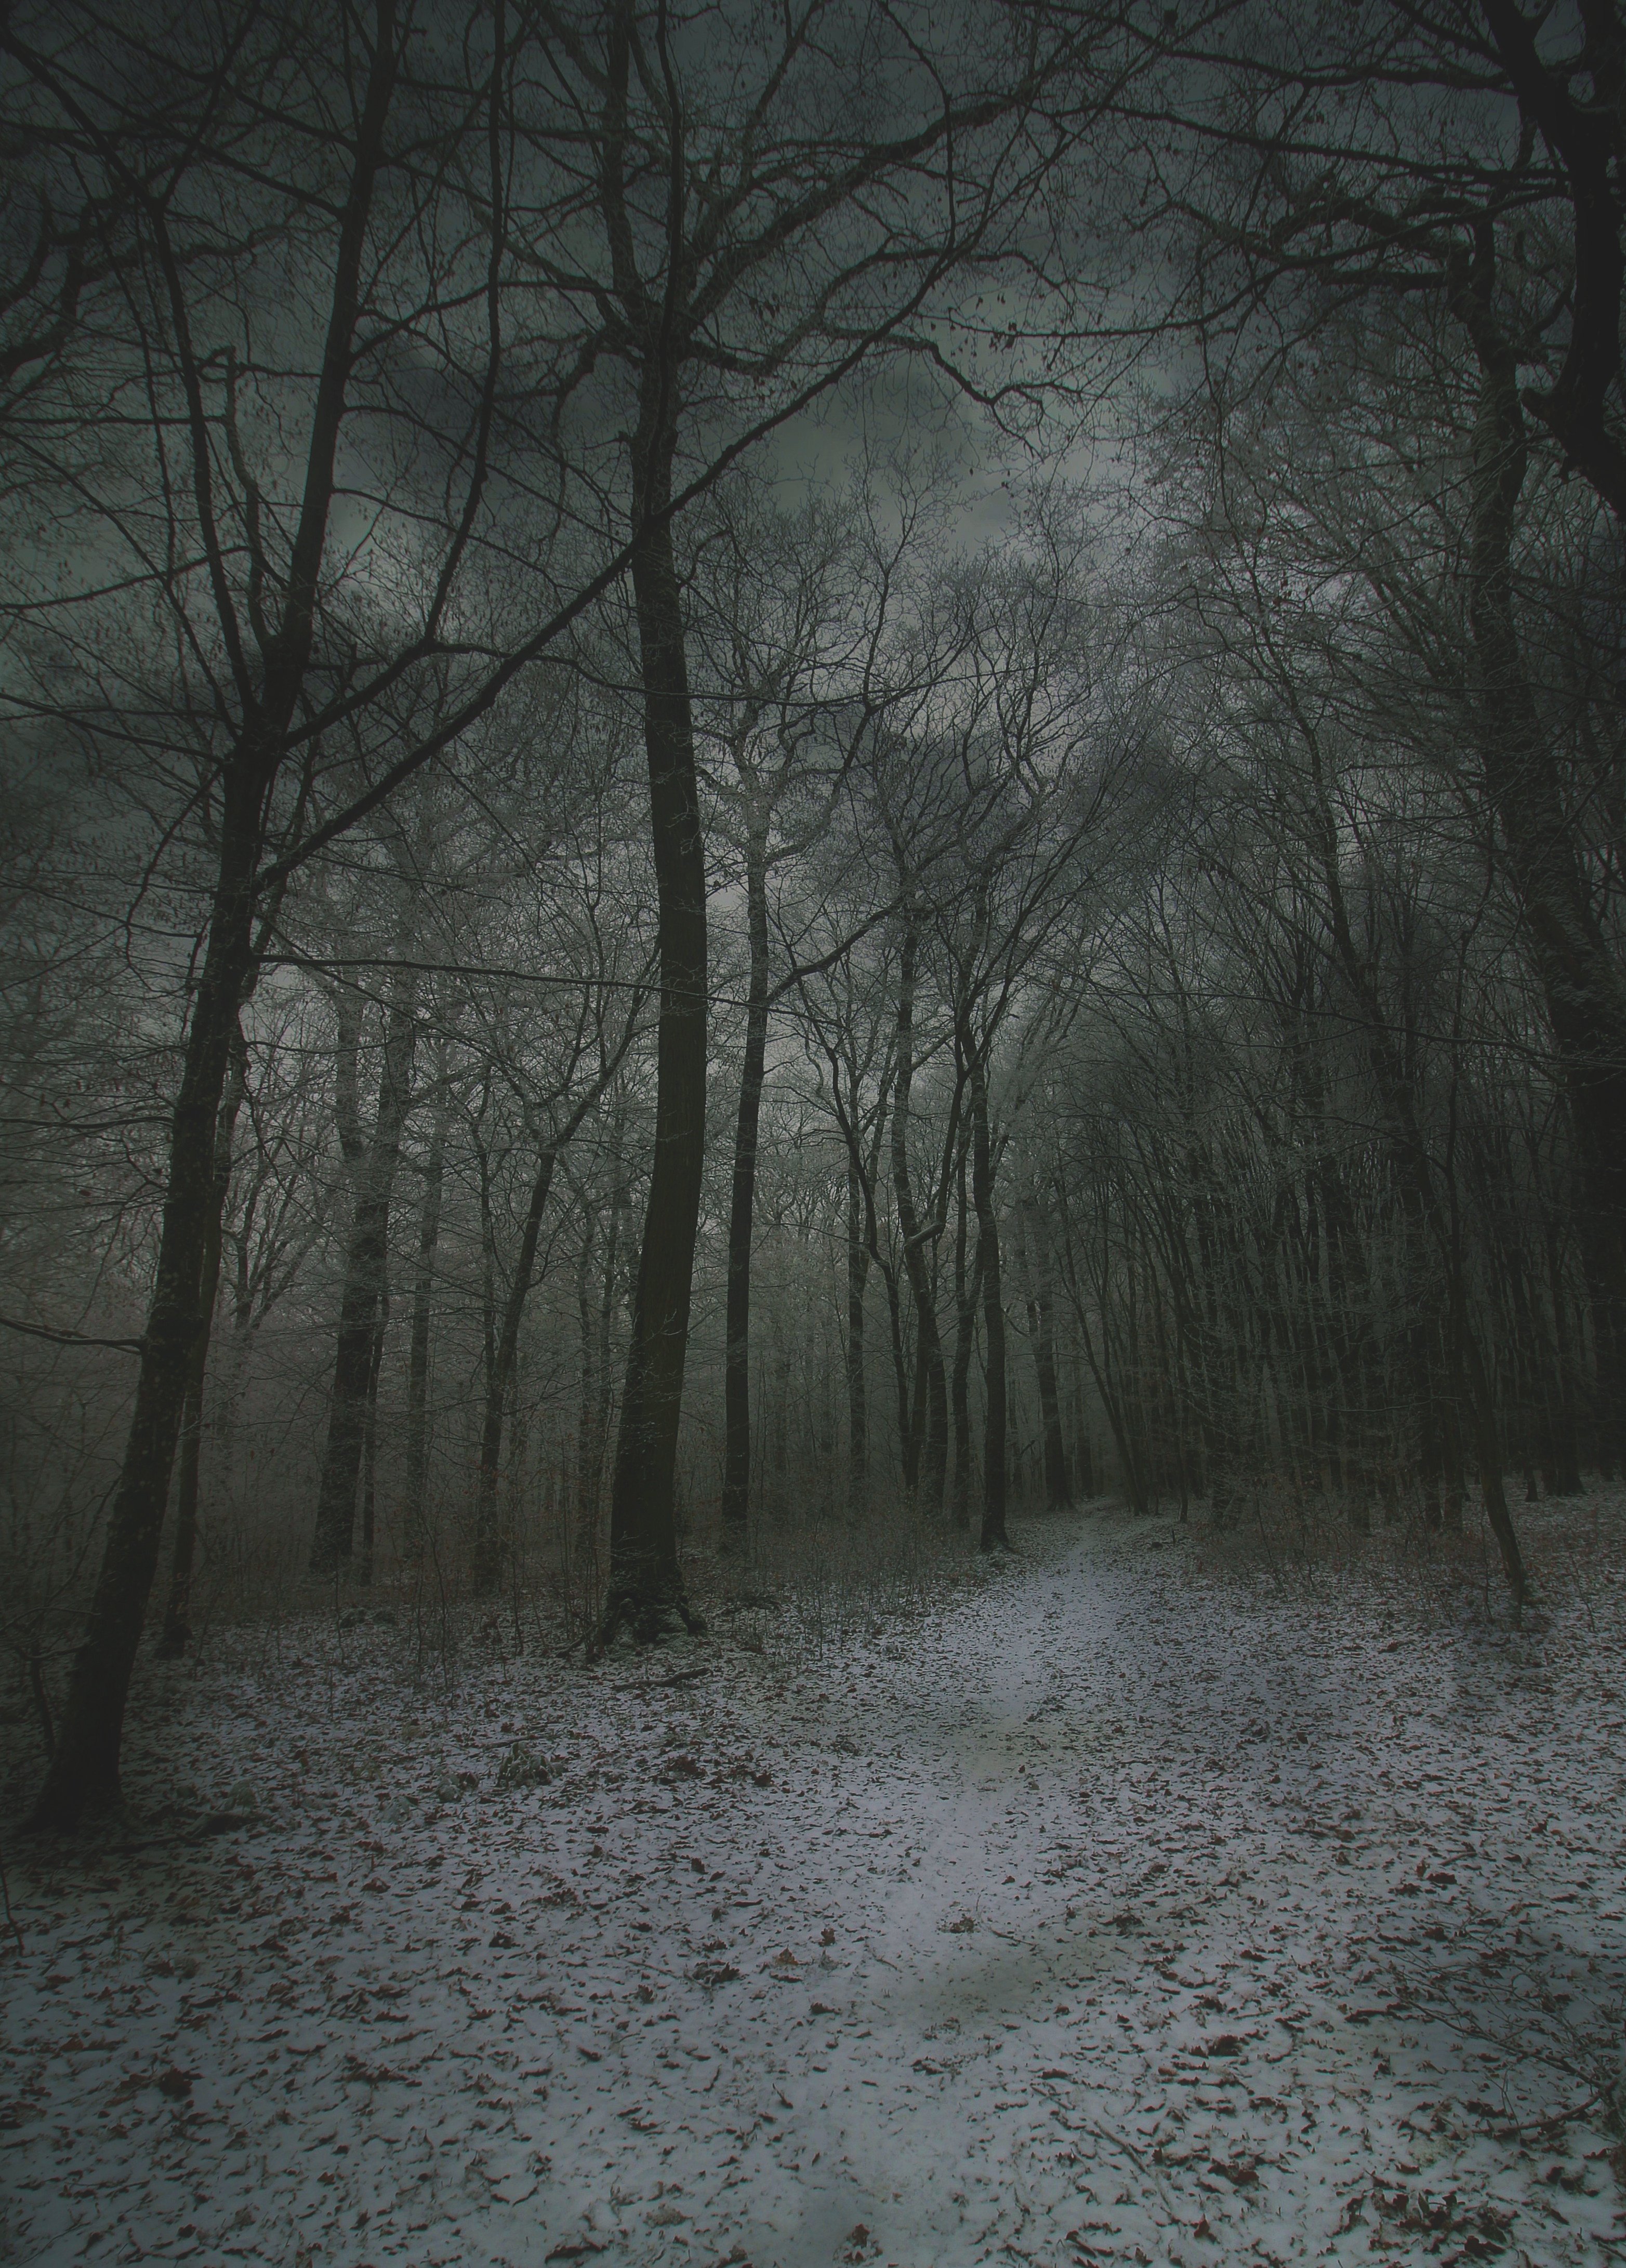 59393 download wallpaper Winter, Nature, Autumn, Snow, Forest, Fog, Path screensavers and pictures for free